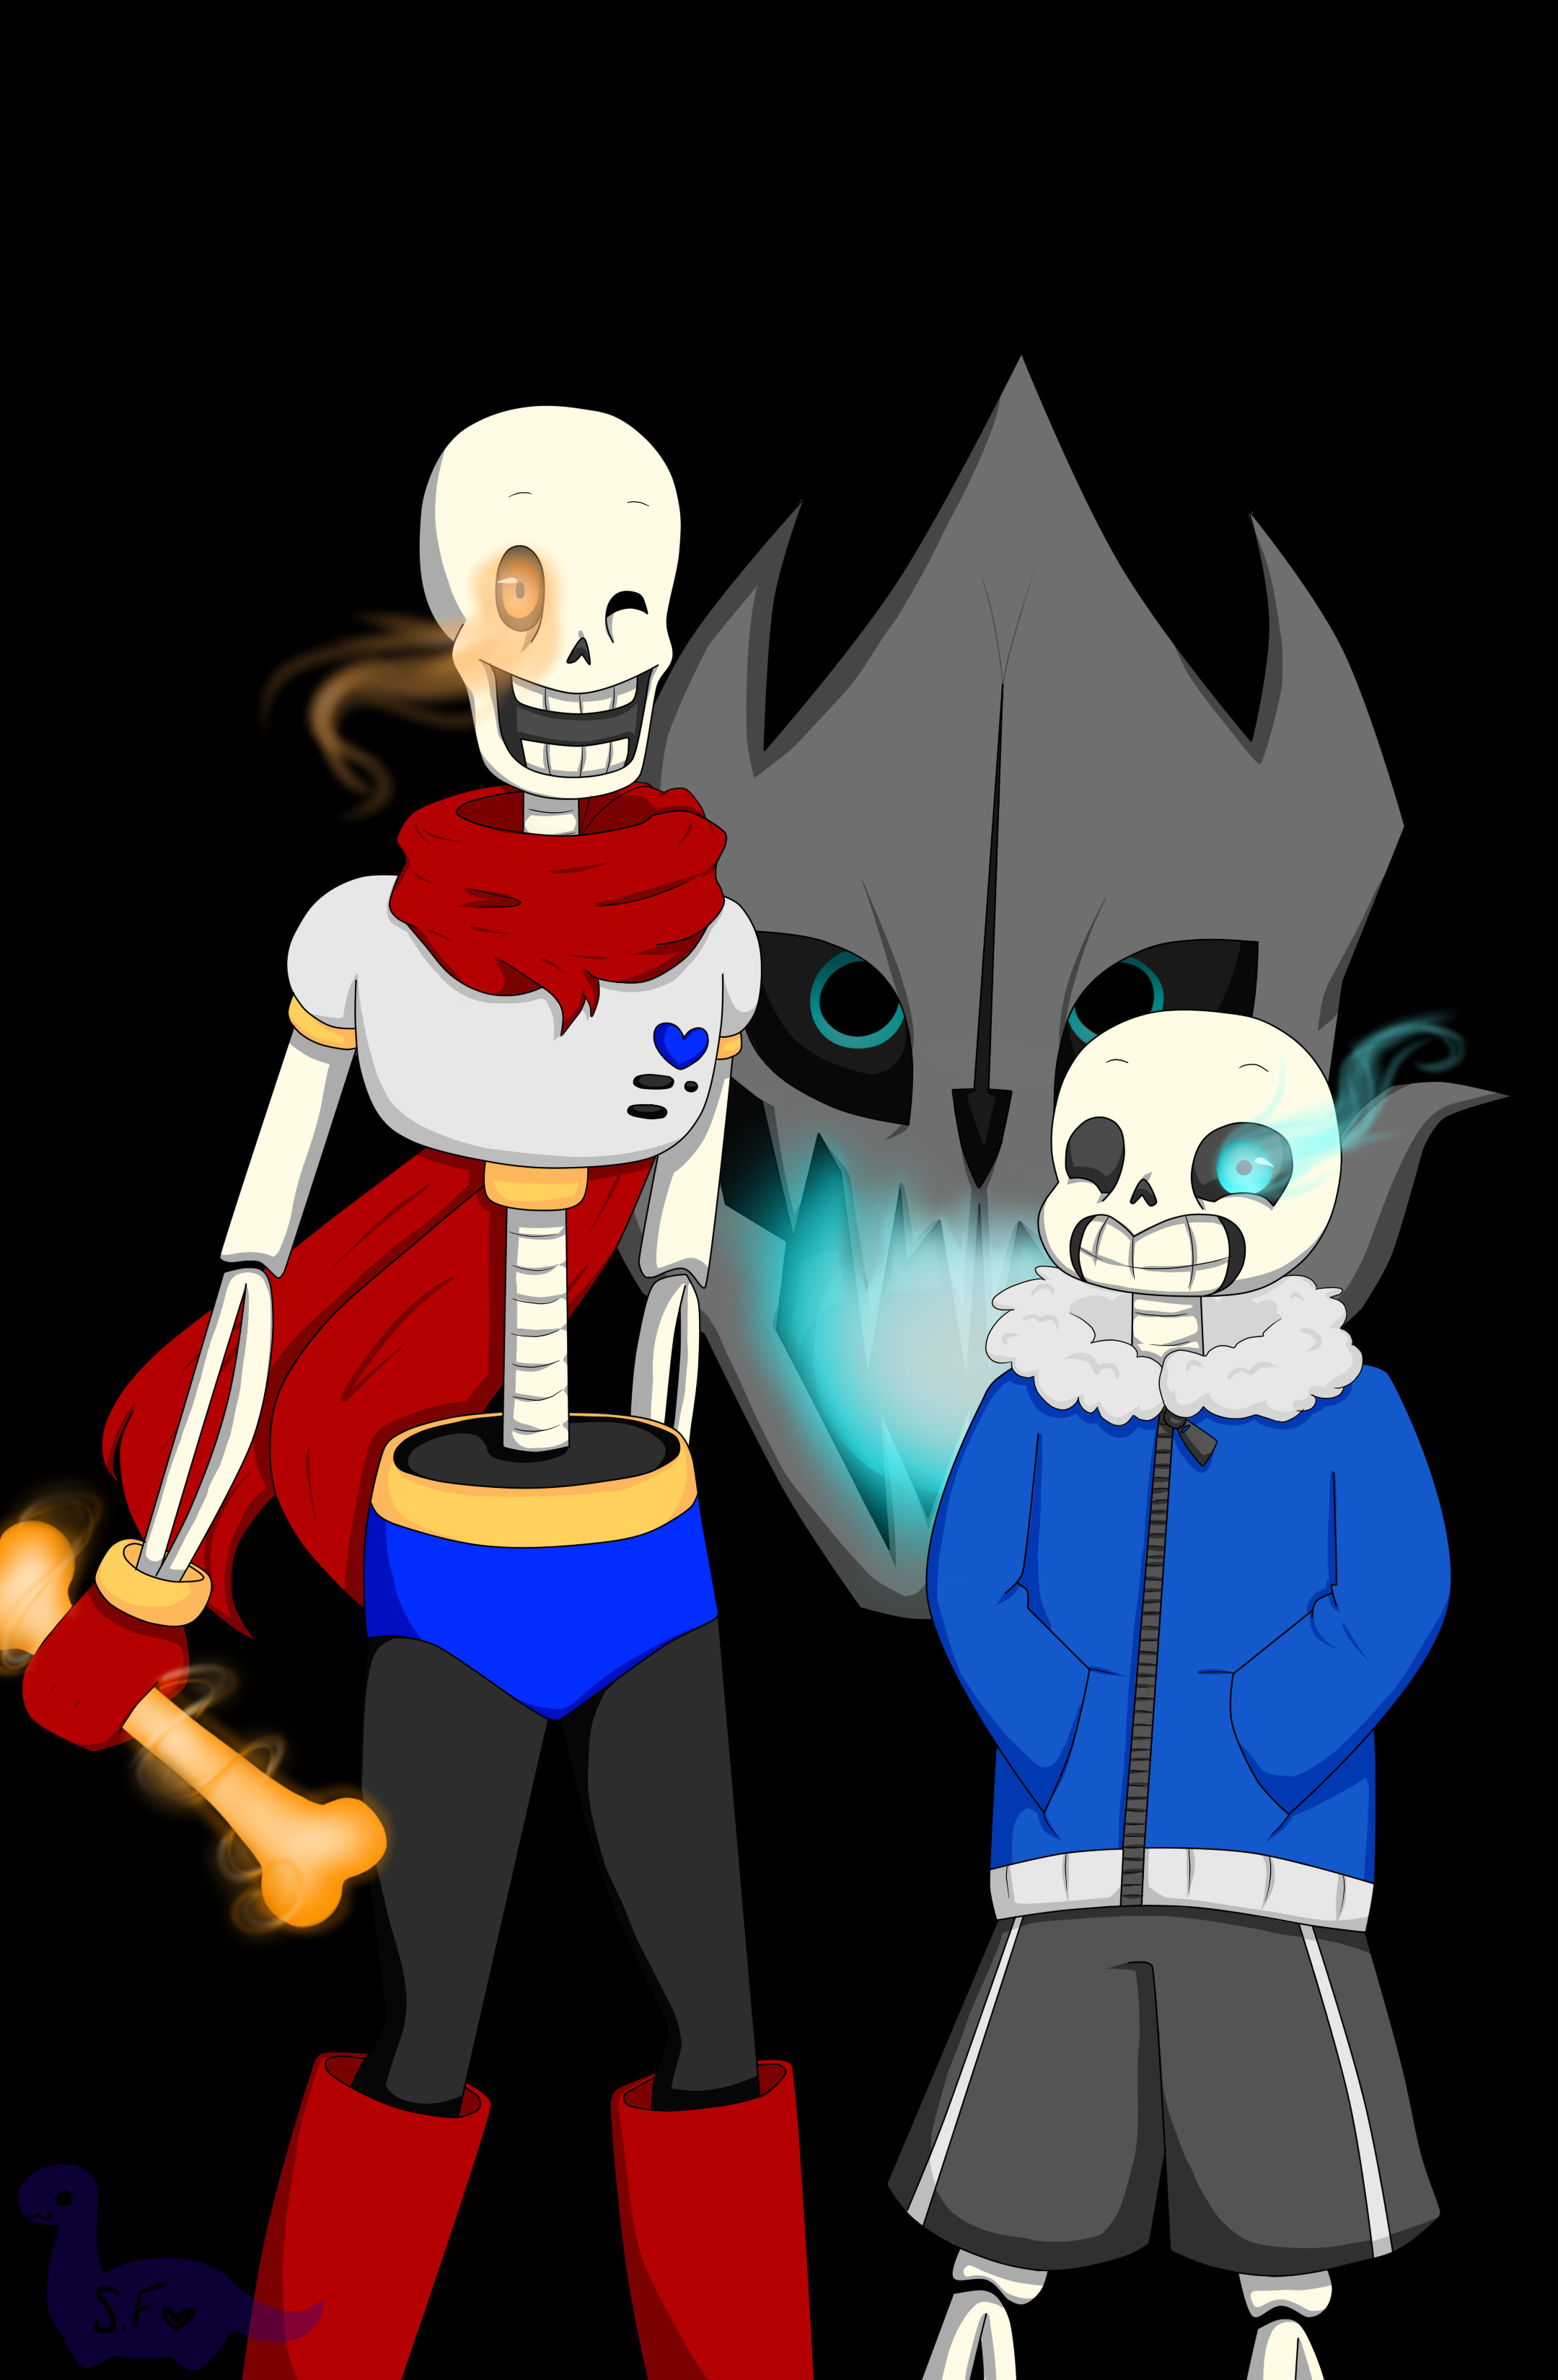 undertale papyrus wallpaper images (2) – HD Wallpapers Buzz